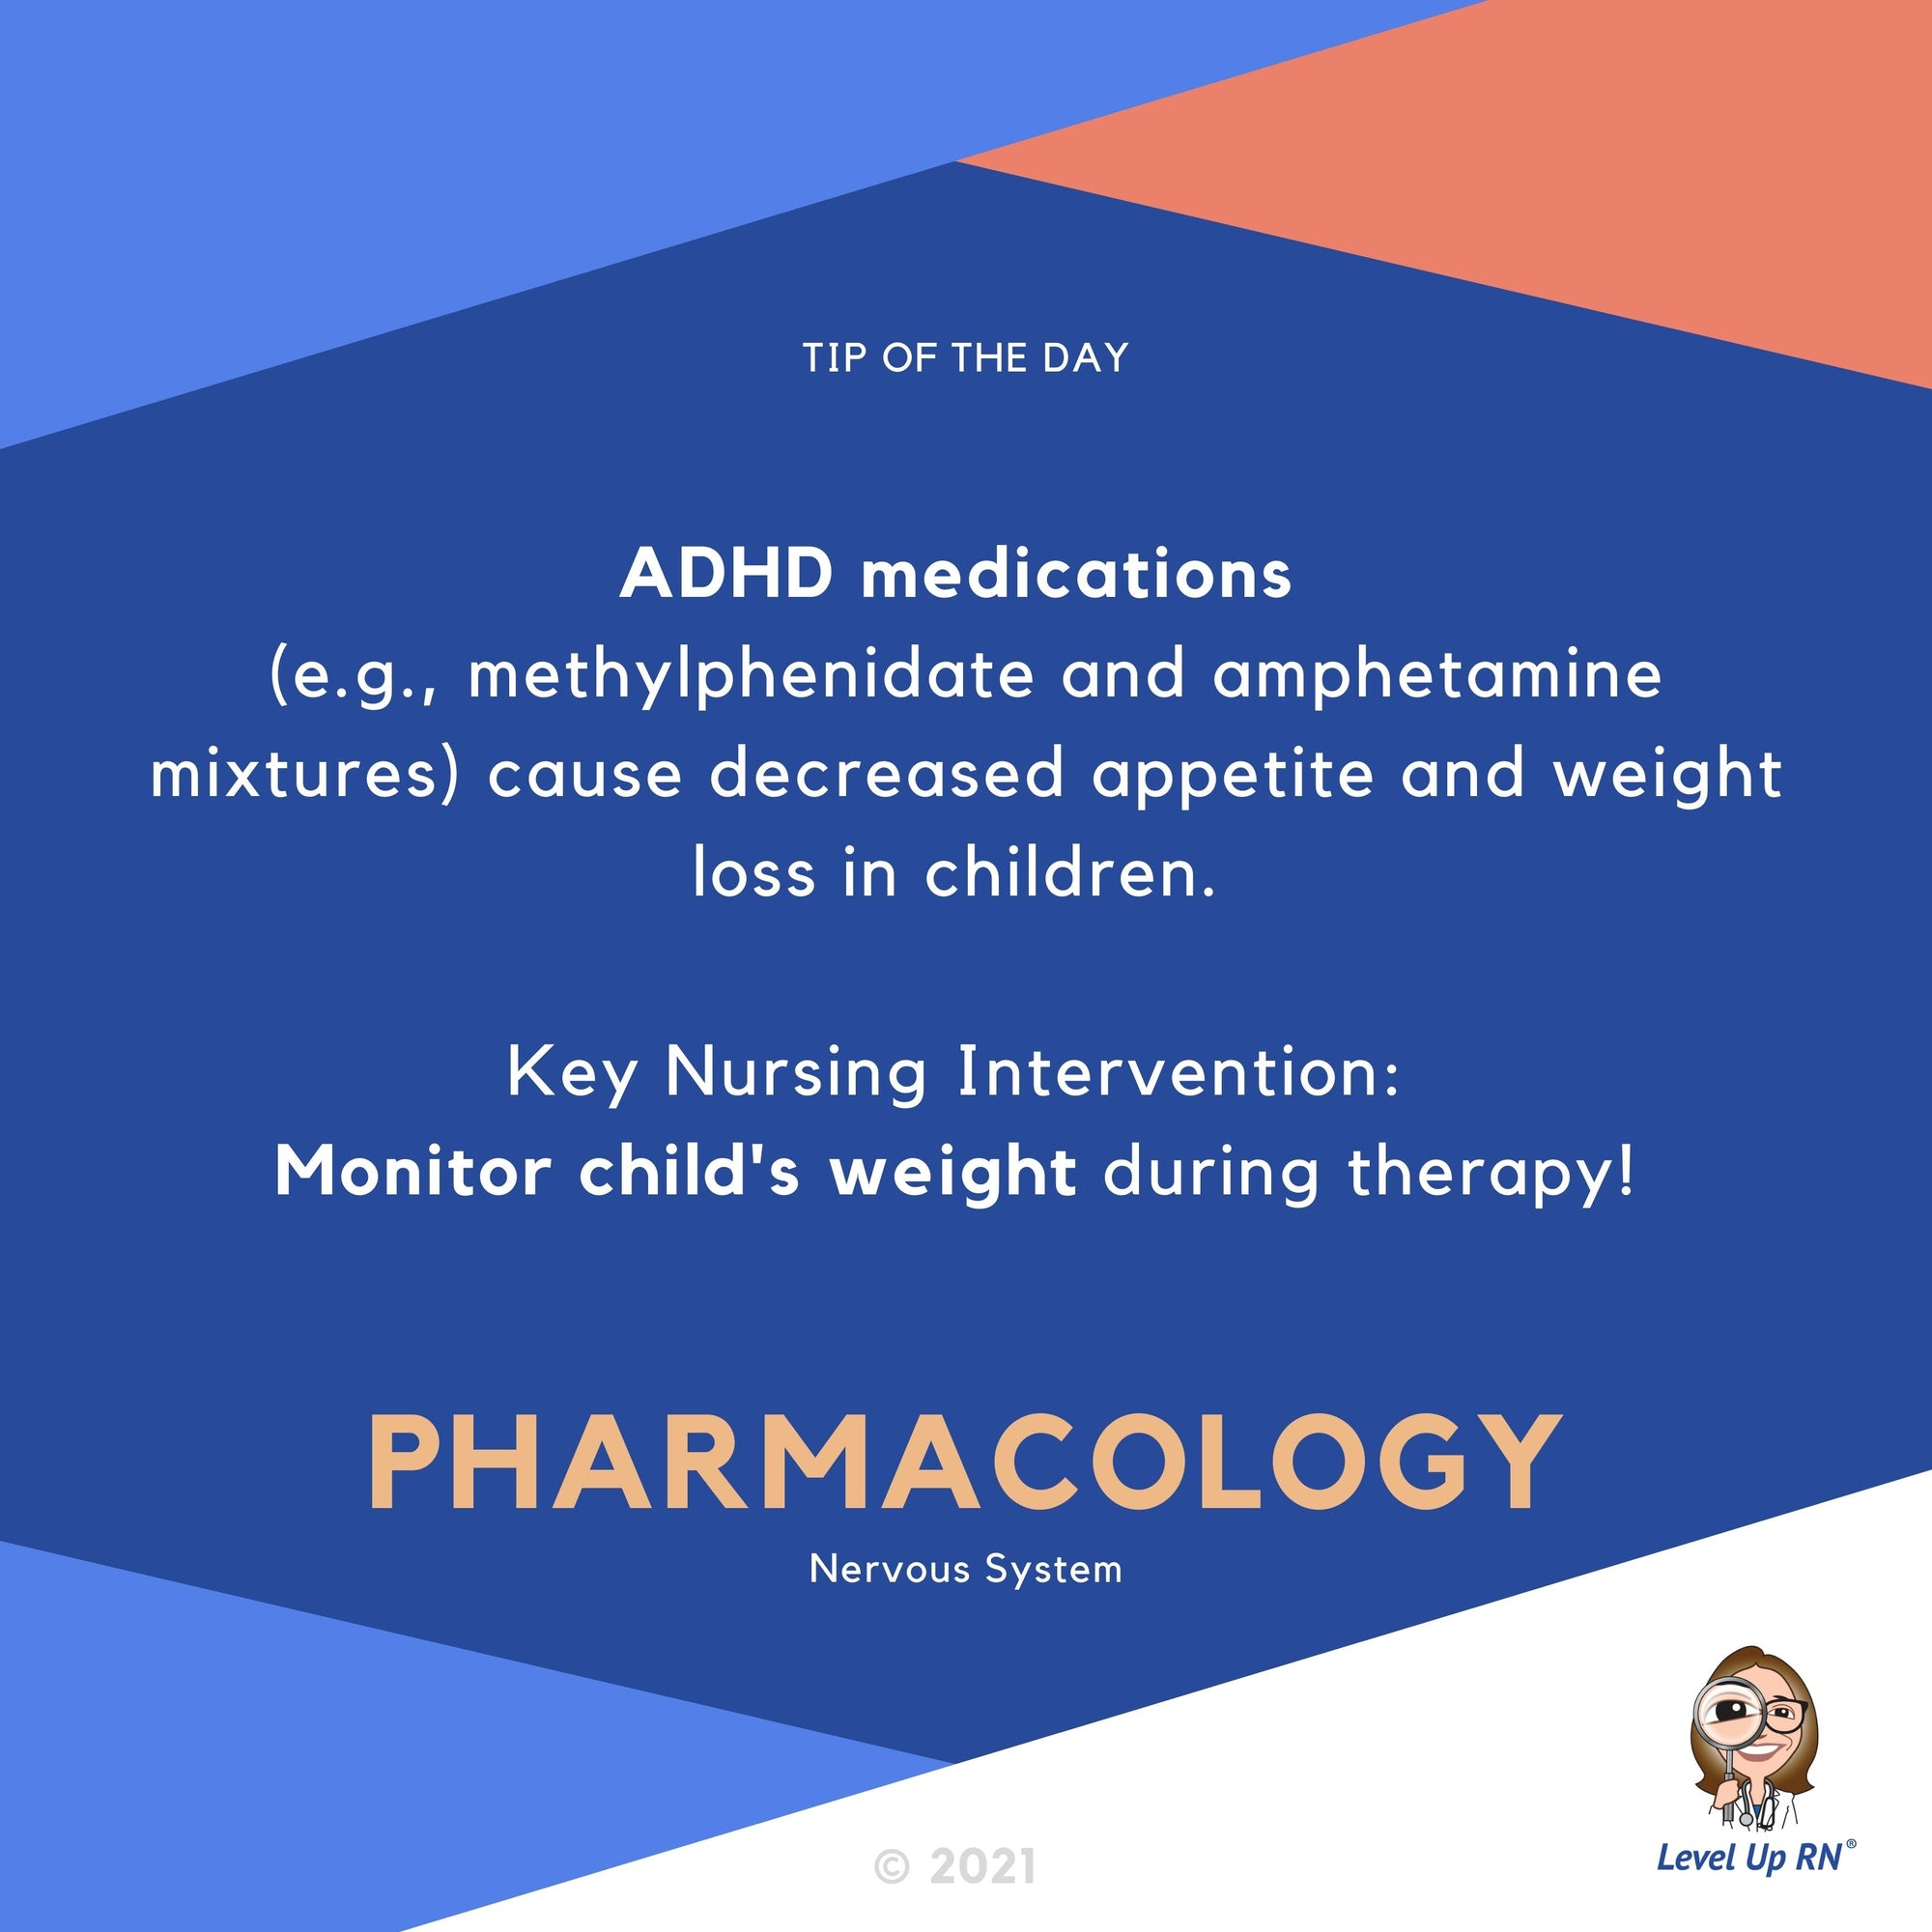 ADHD medications (e.g. methylphenidate and amphetamine mixtures) cause decreased appetite and weight loss in children.  Key Nursing Intervention: Monitor child's weight during therapy!